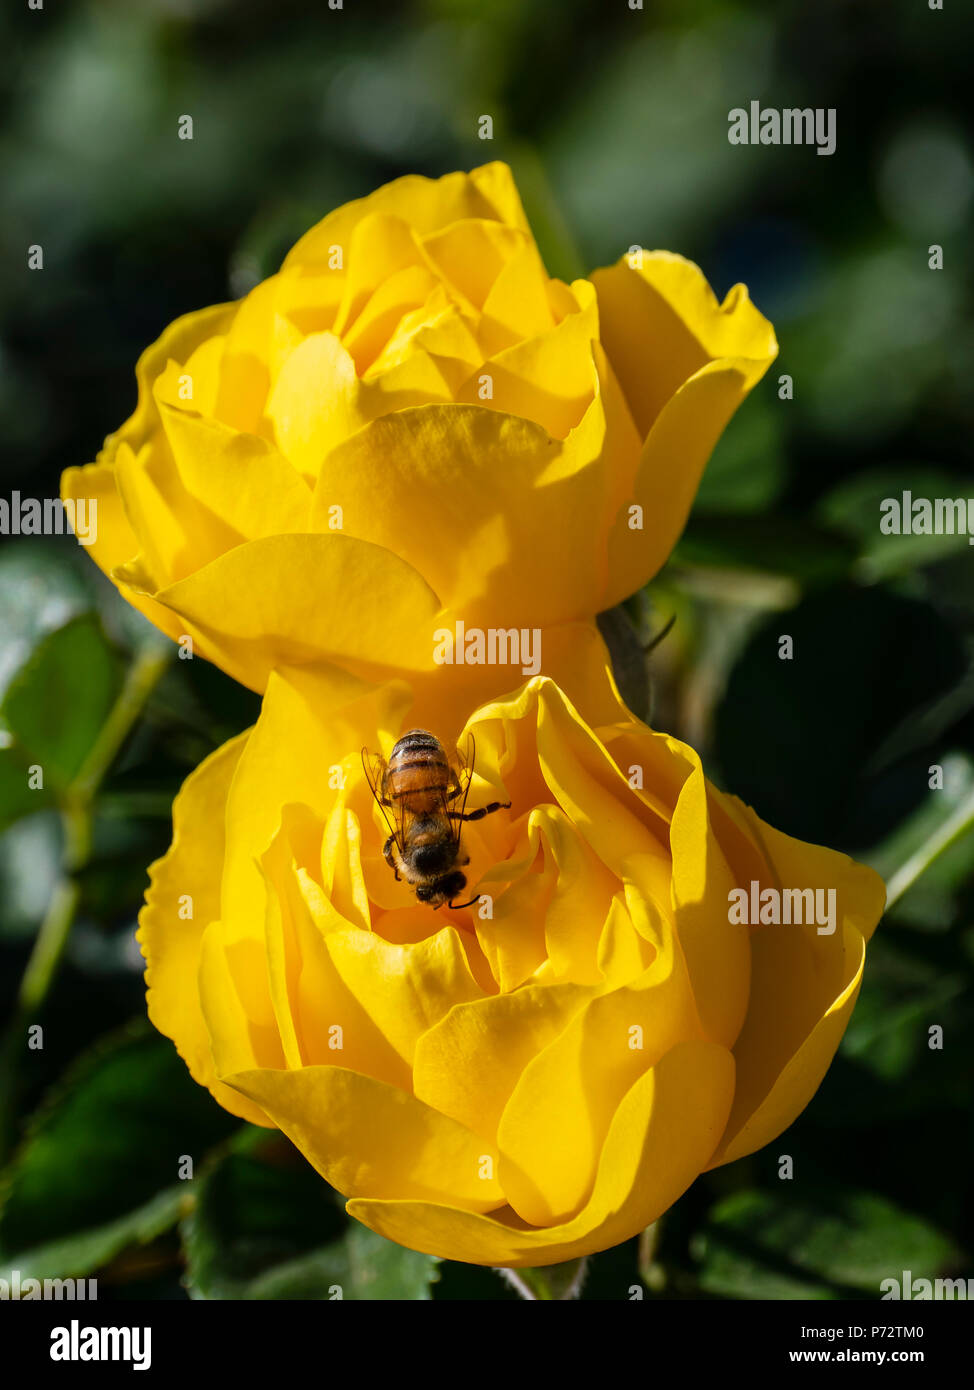 A bee feasts on Walking on Sunshine rose blossoms, Inez Grant Parker Memorial Rose Garden, Balboa Park, San Diego, California. - Stock Image